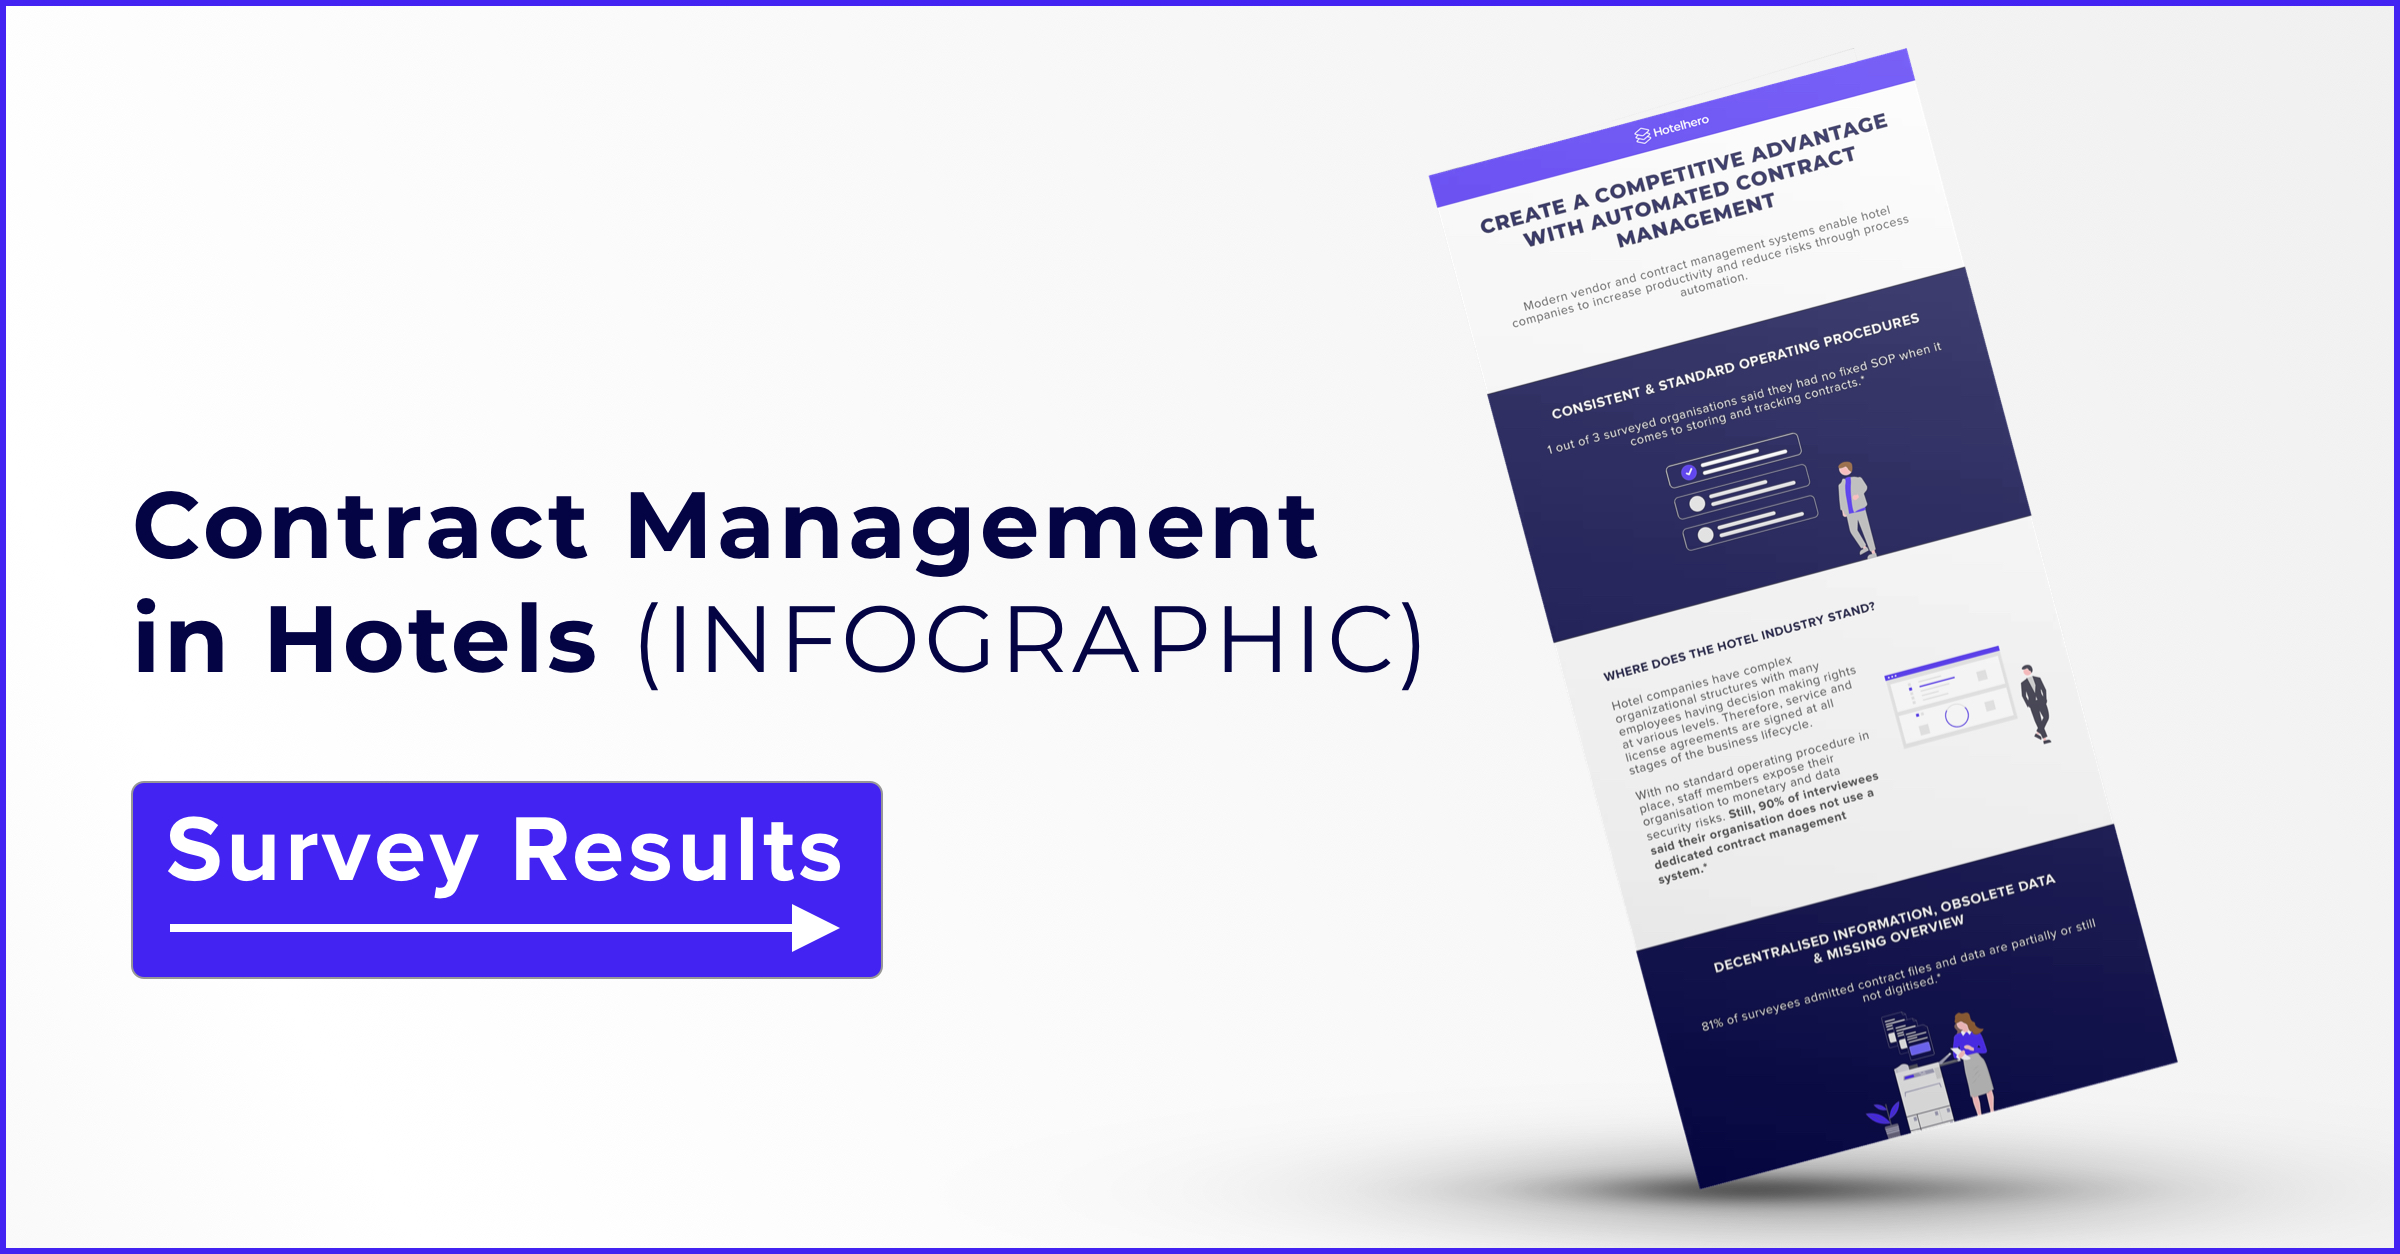 Digital Contract Management in Hotels (INFOGRAPHIC)